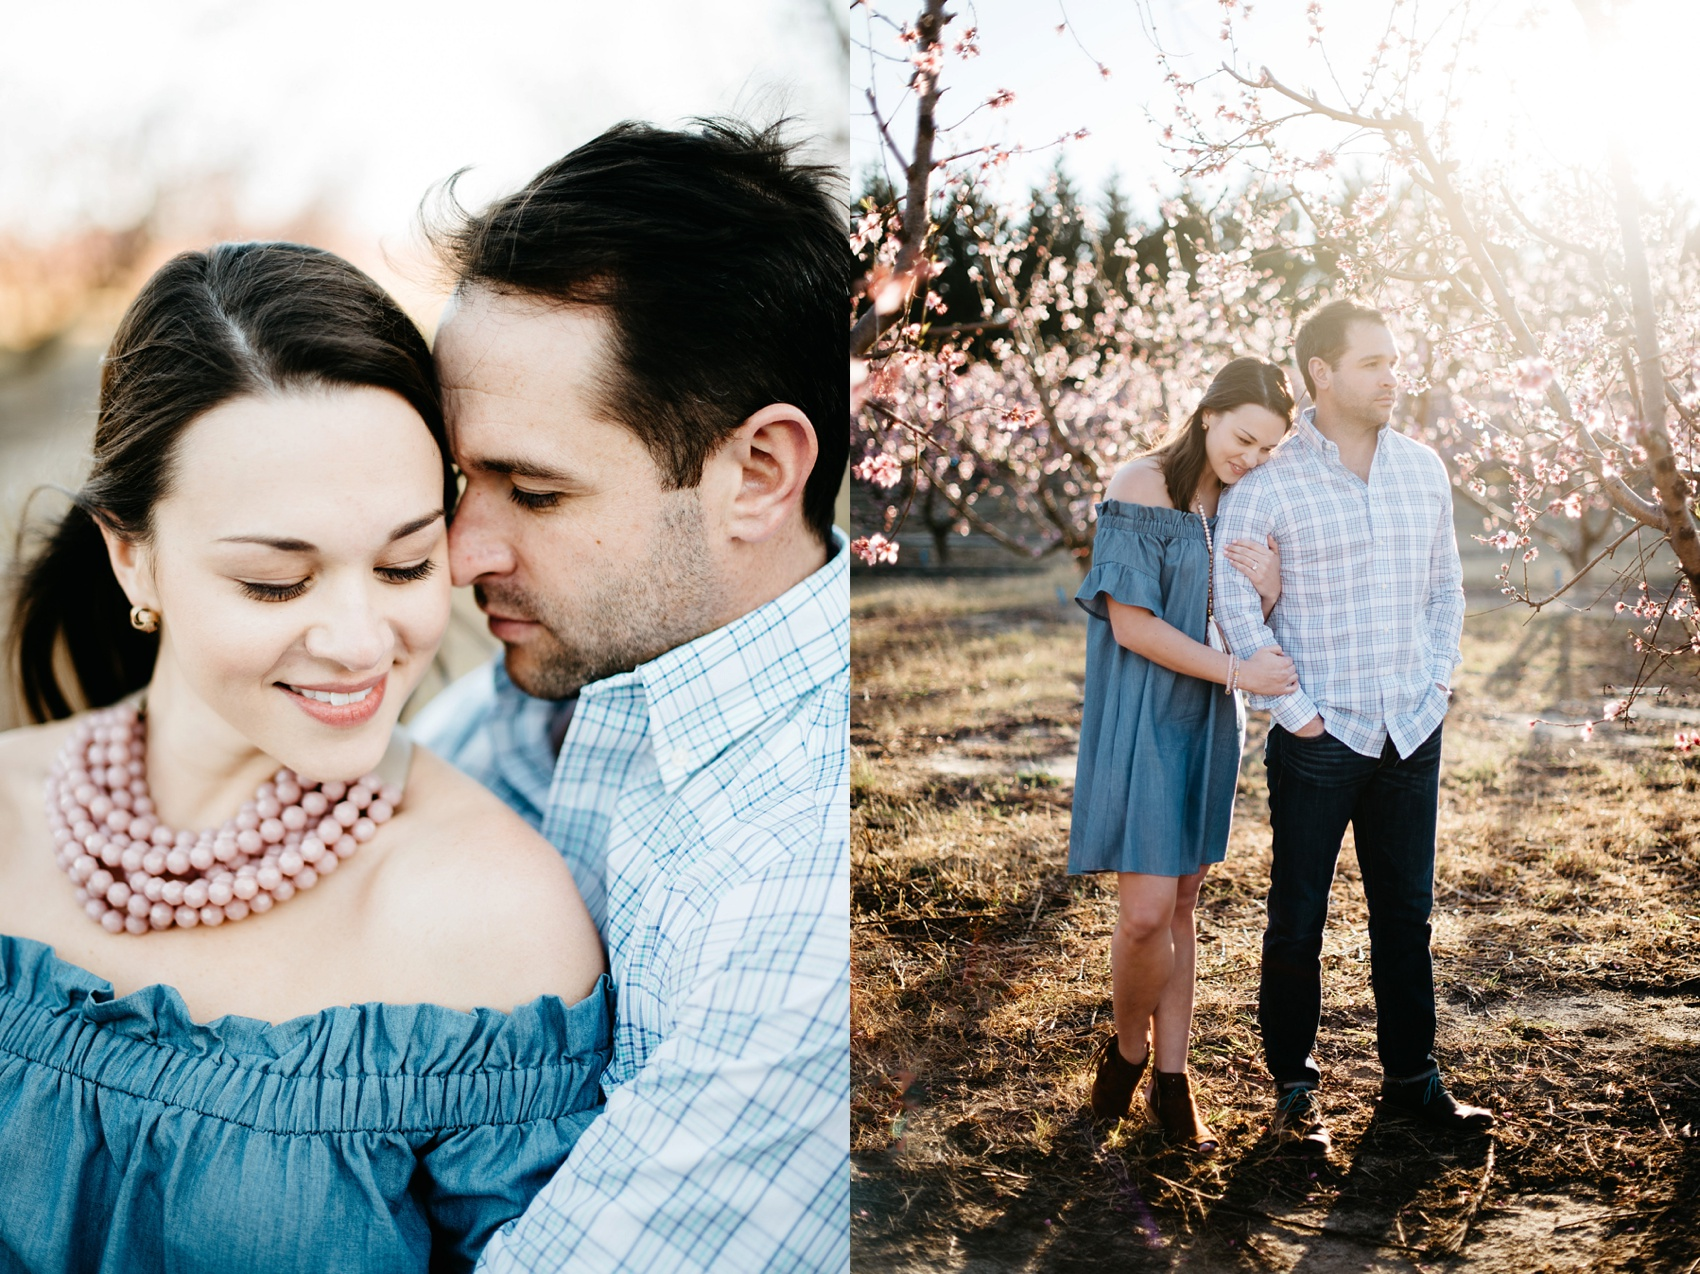 peachtree_engagement_session_1846.jpg